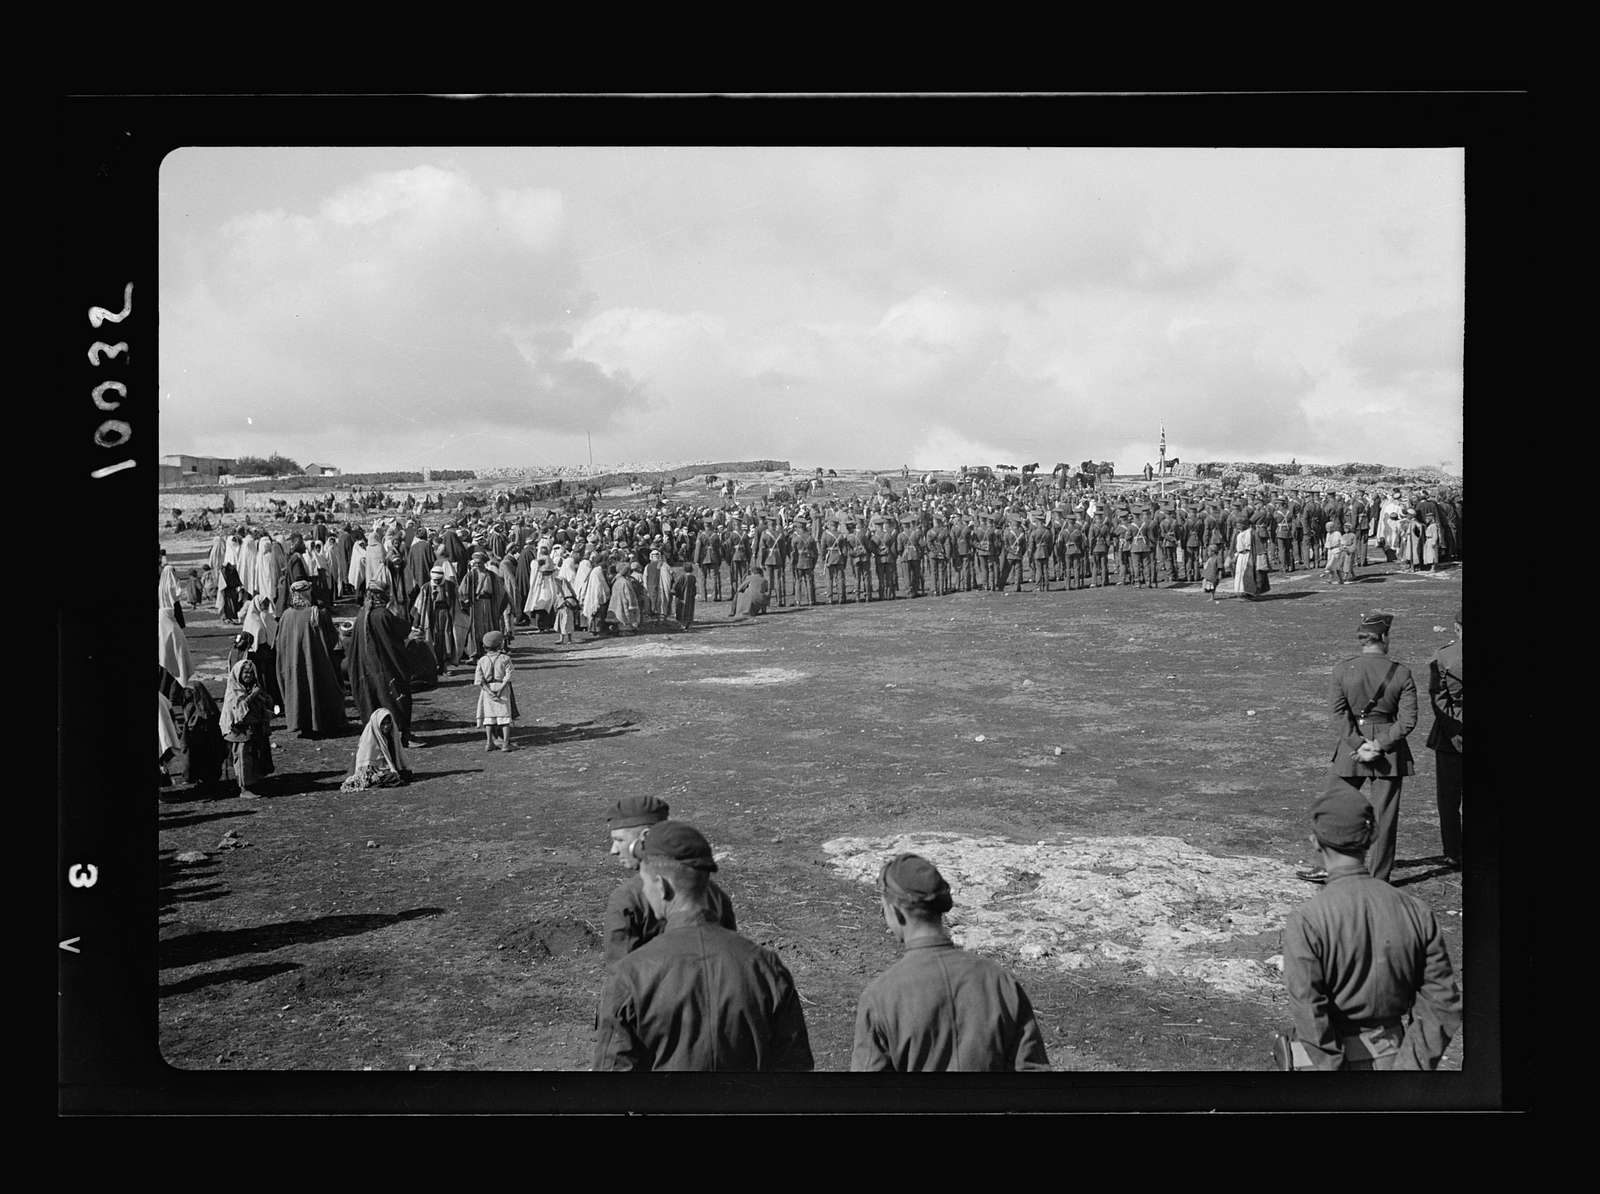 Arab demonstration at Yatta. View of the general gathering on the hill-side